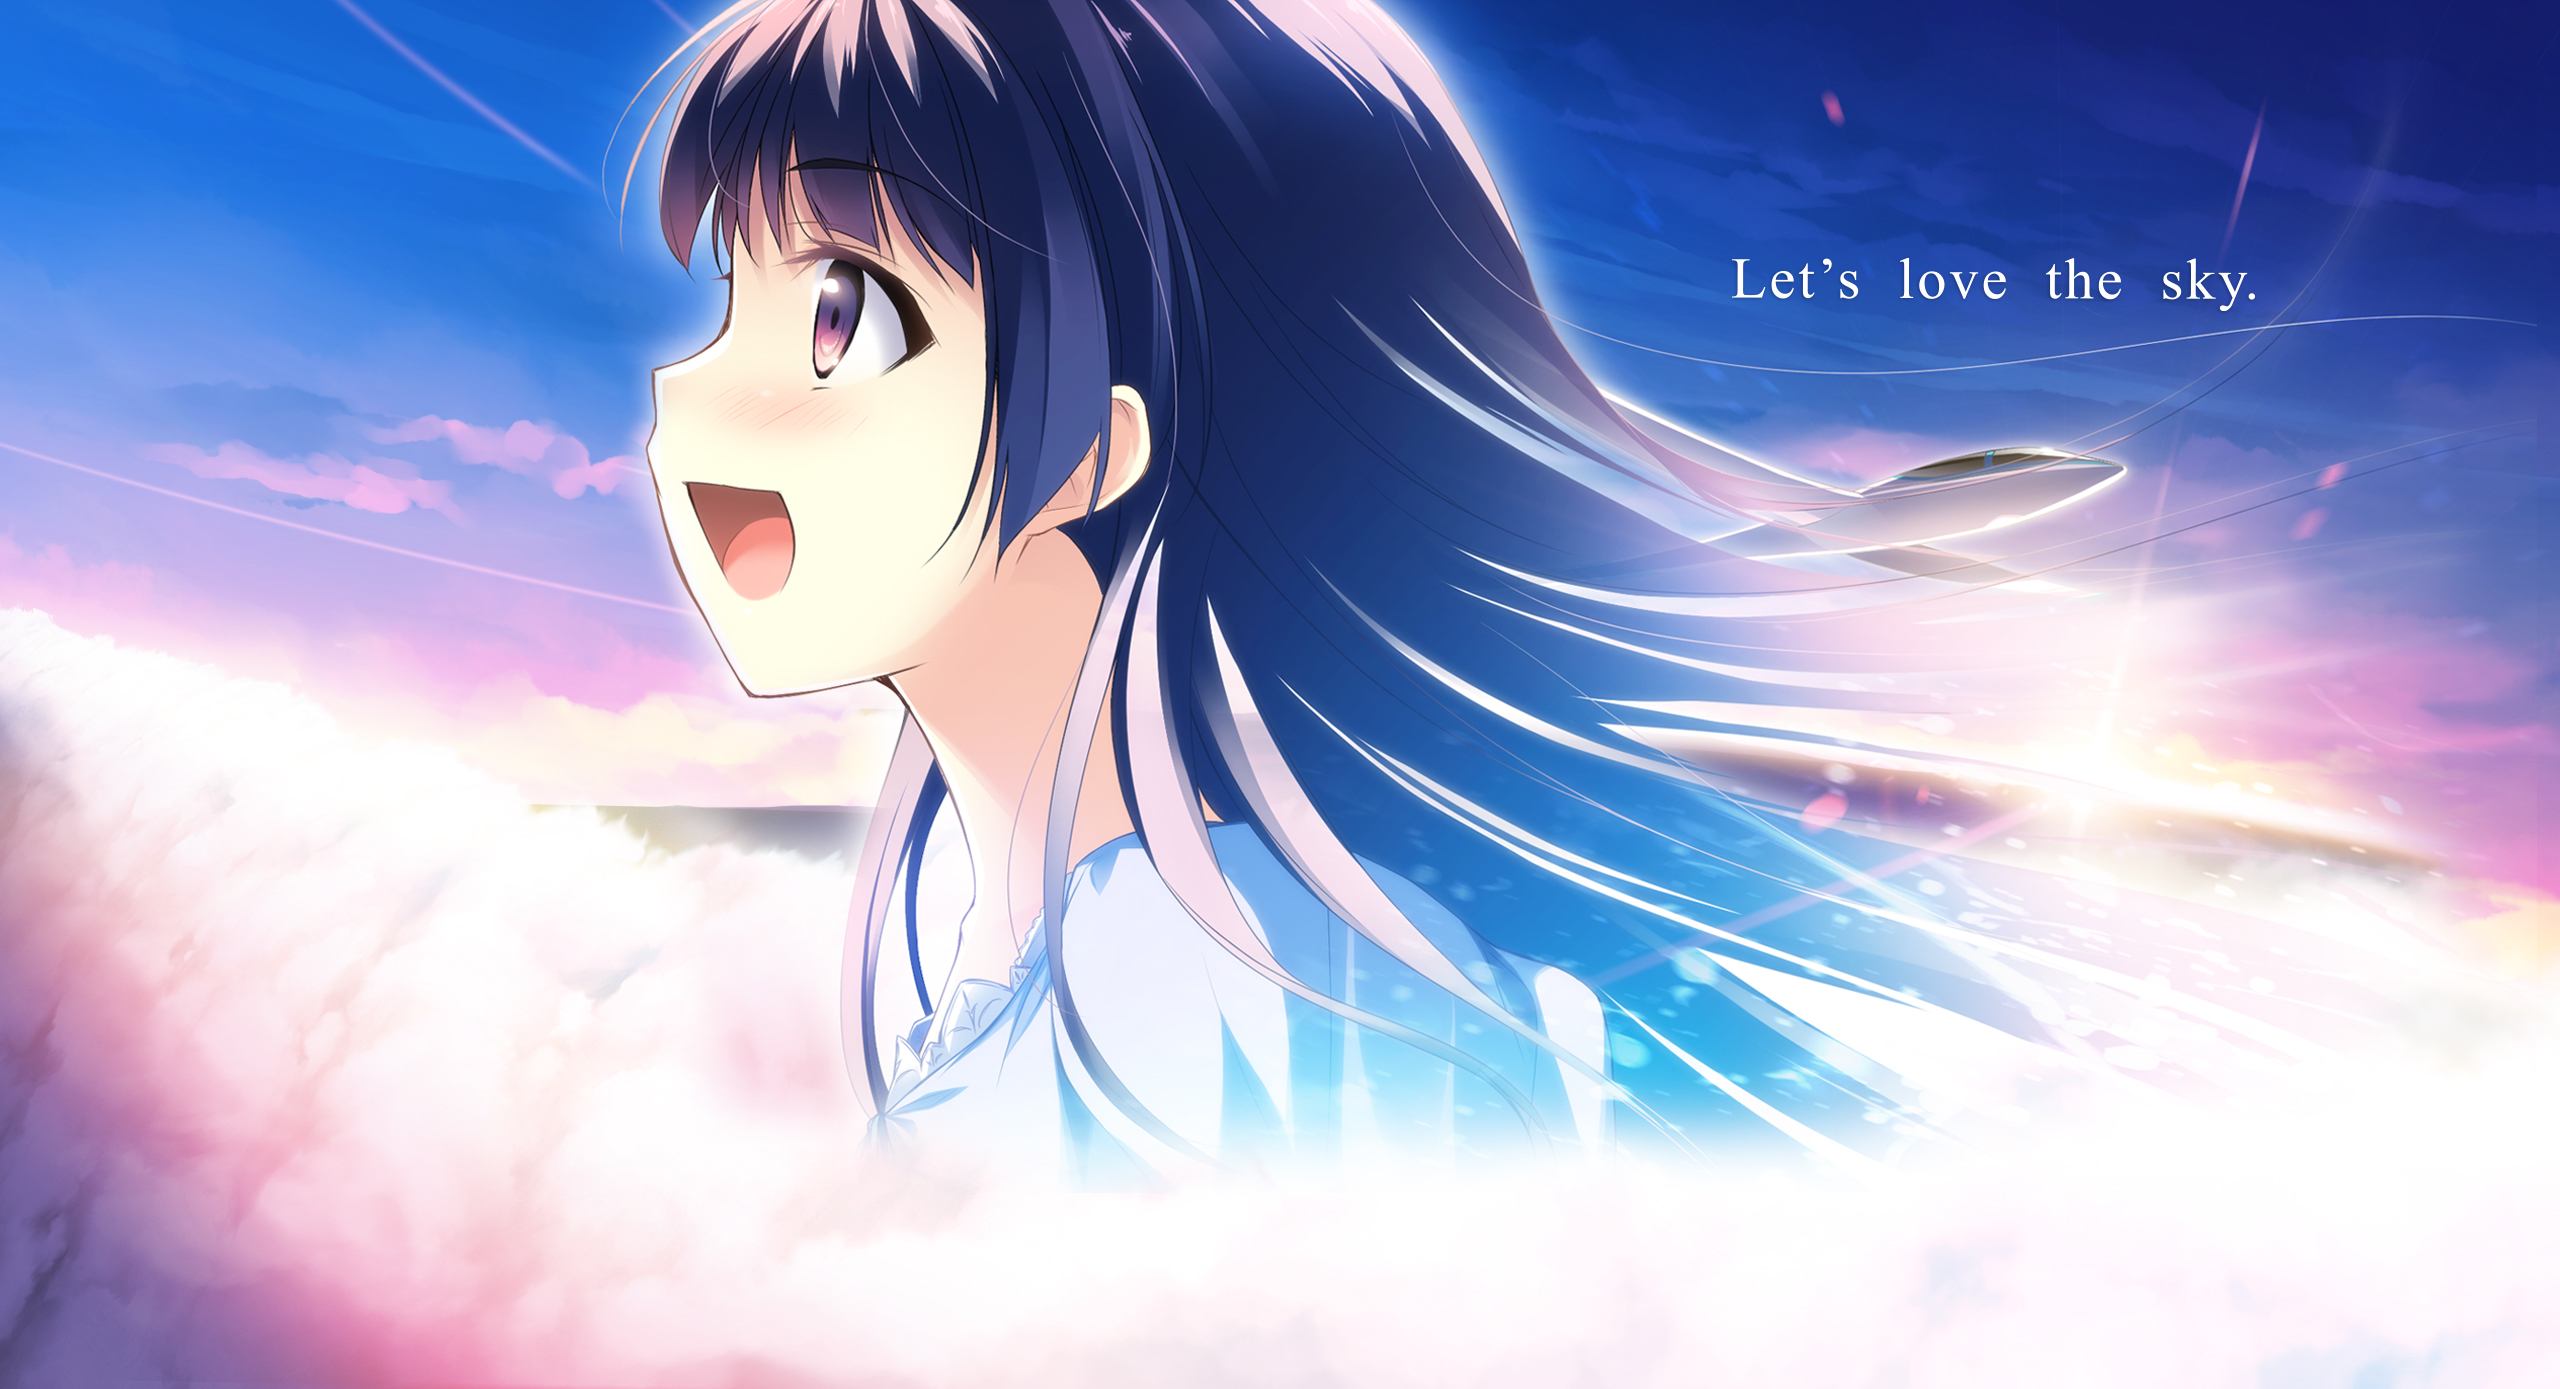 If My Heart Had Wings Original Sound Track On Steam